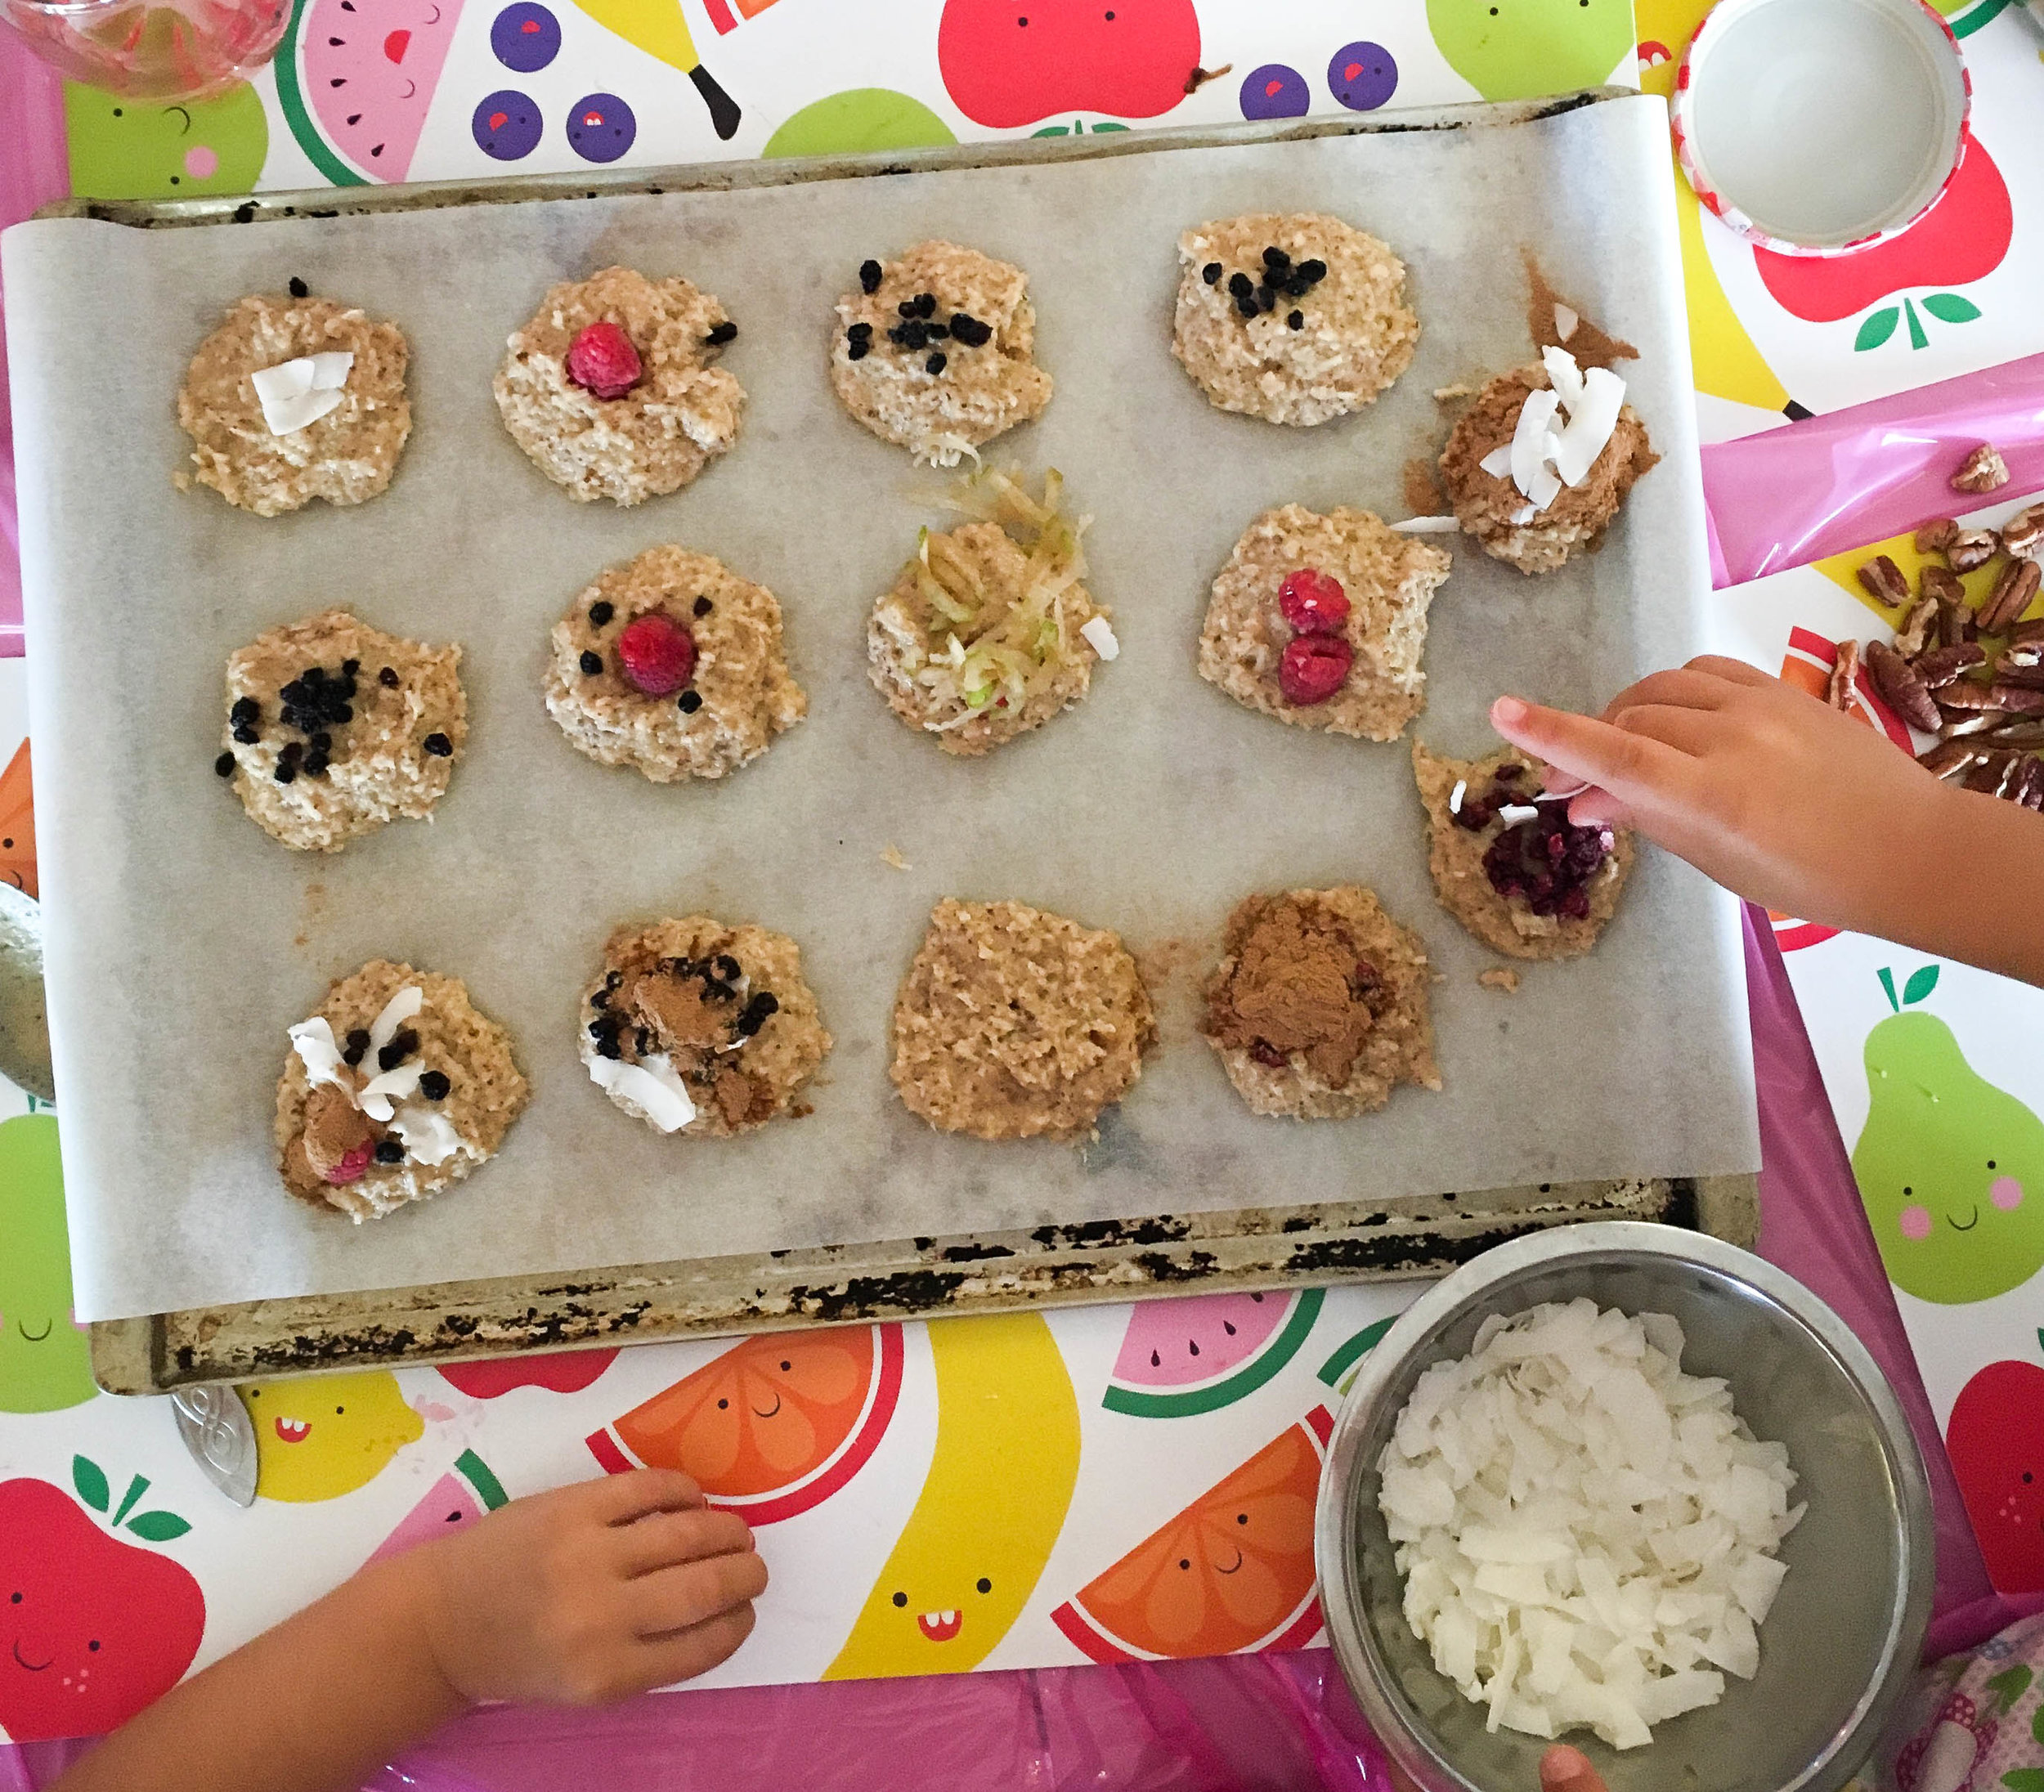 Coconut & almond cookies with DIY toppings.